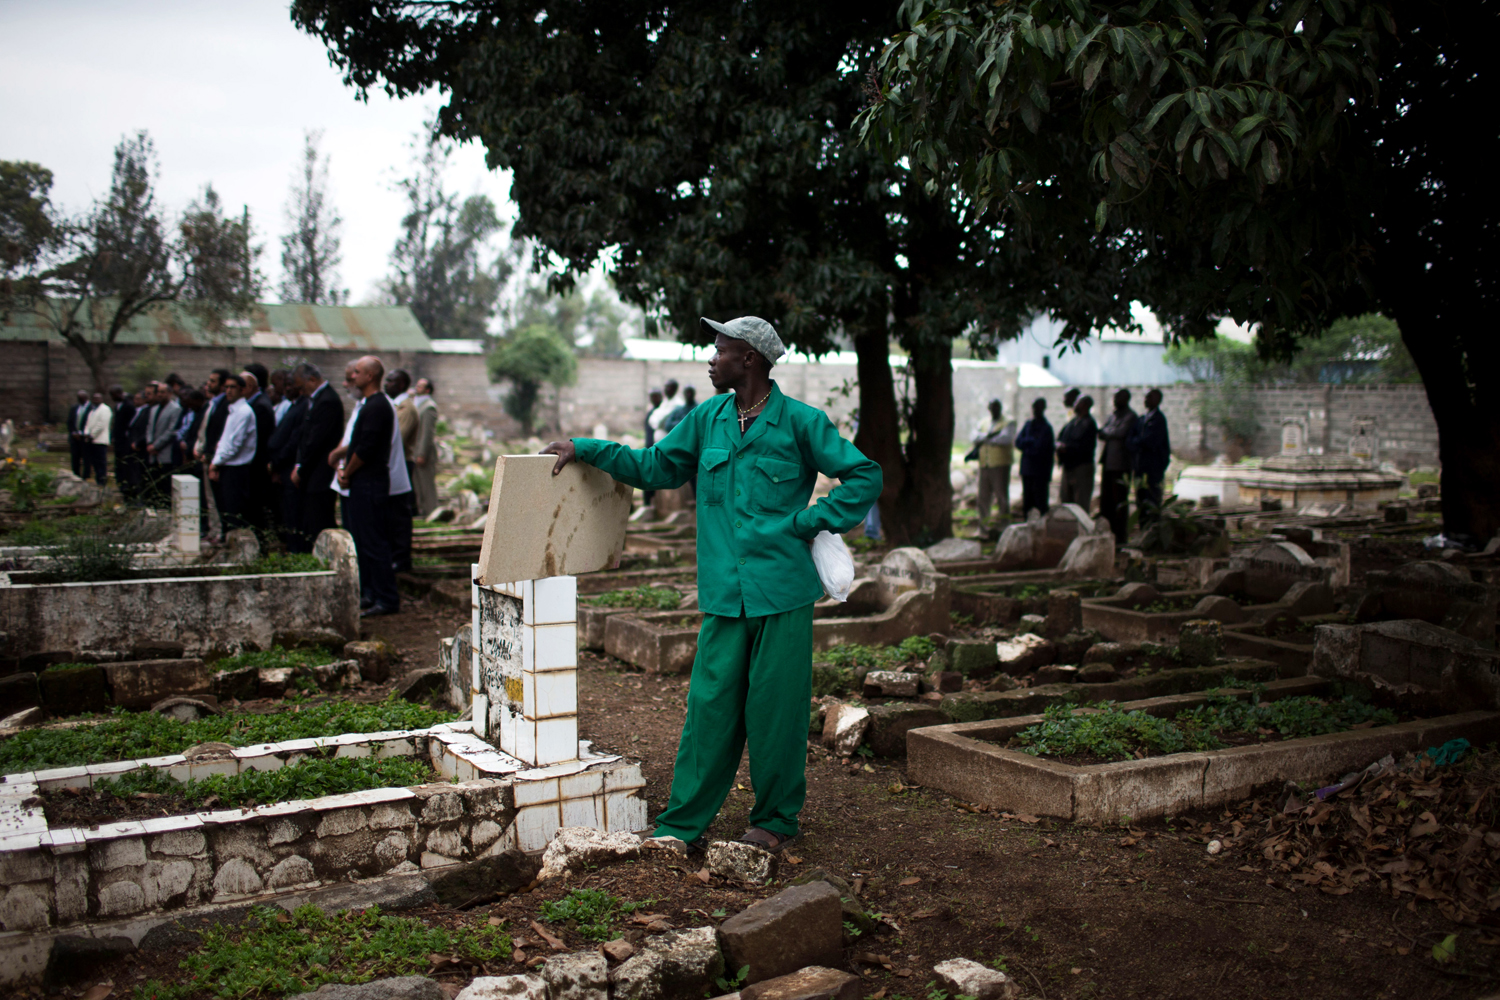 Sept. 25, 2013 A cemetery worker looks on as friends and relatives mourn during a funeral service for Selima Merali (41) and her daughter Nuriana Merali (15), who were killed in the attack by gunmen at the Westgate Shopping Centre, in Nairobi, Kenya.